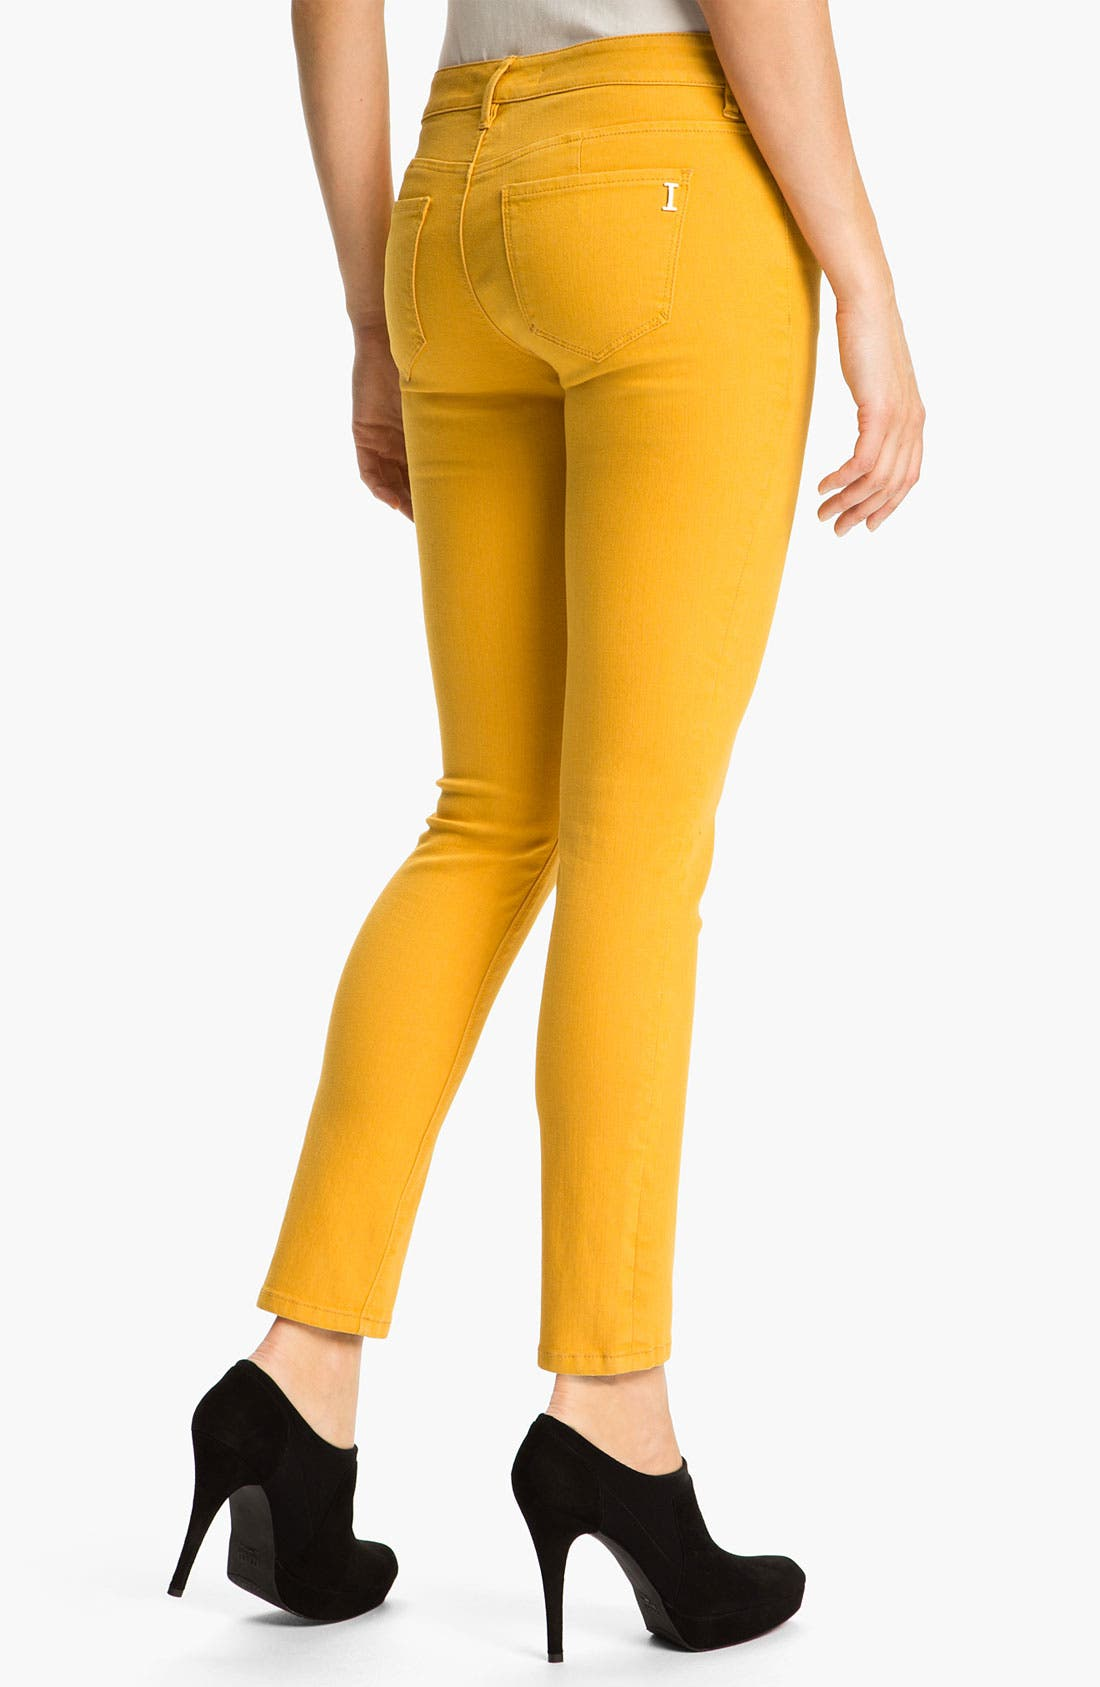 Alternate Image 2  - Isaac Mizrahi Jeans 'Samantha' Colored Skinny Jeans